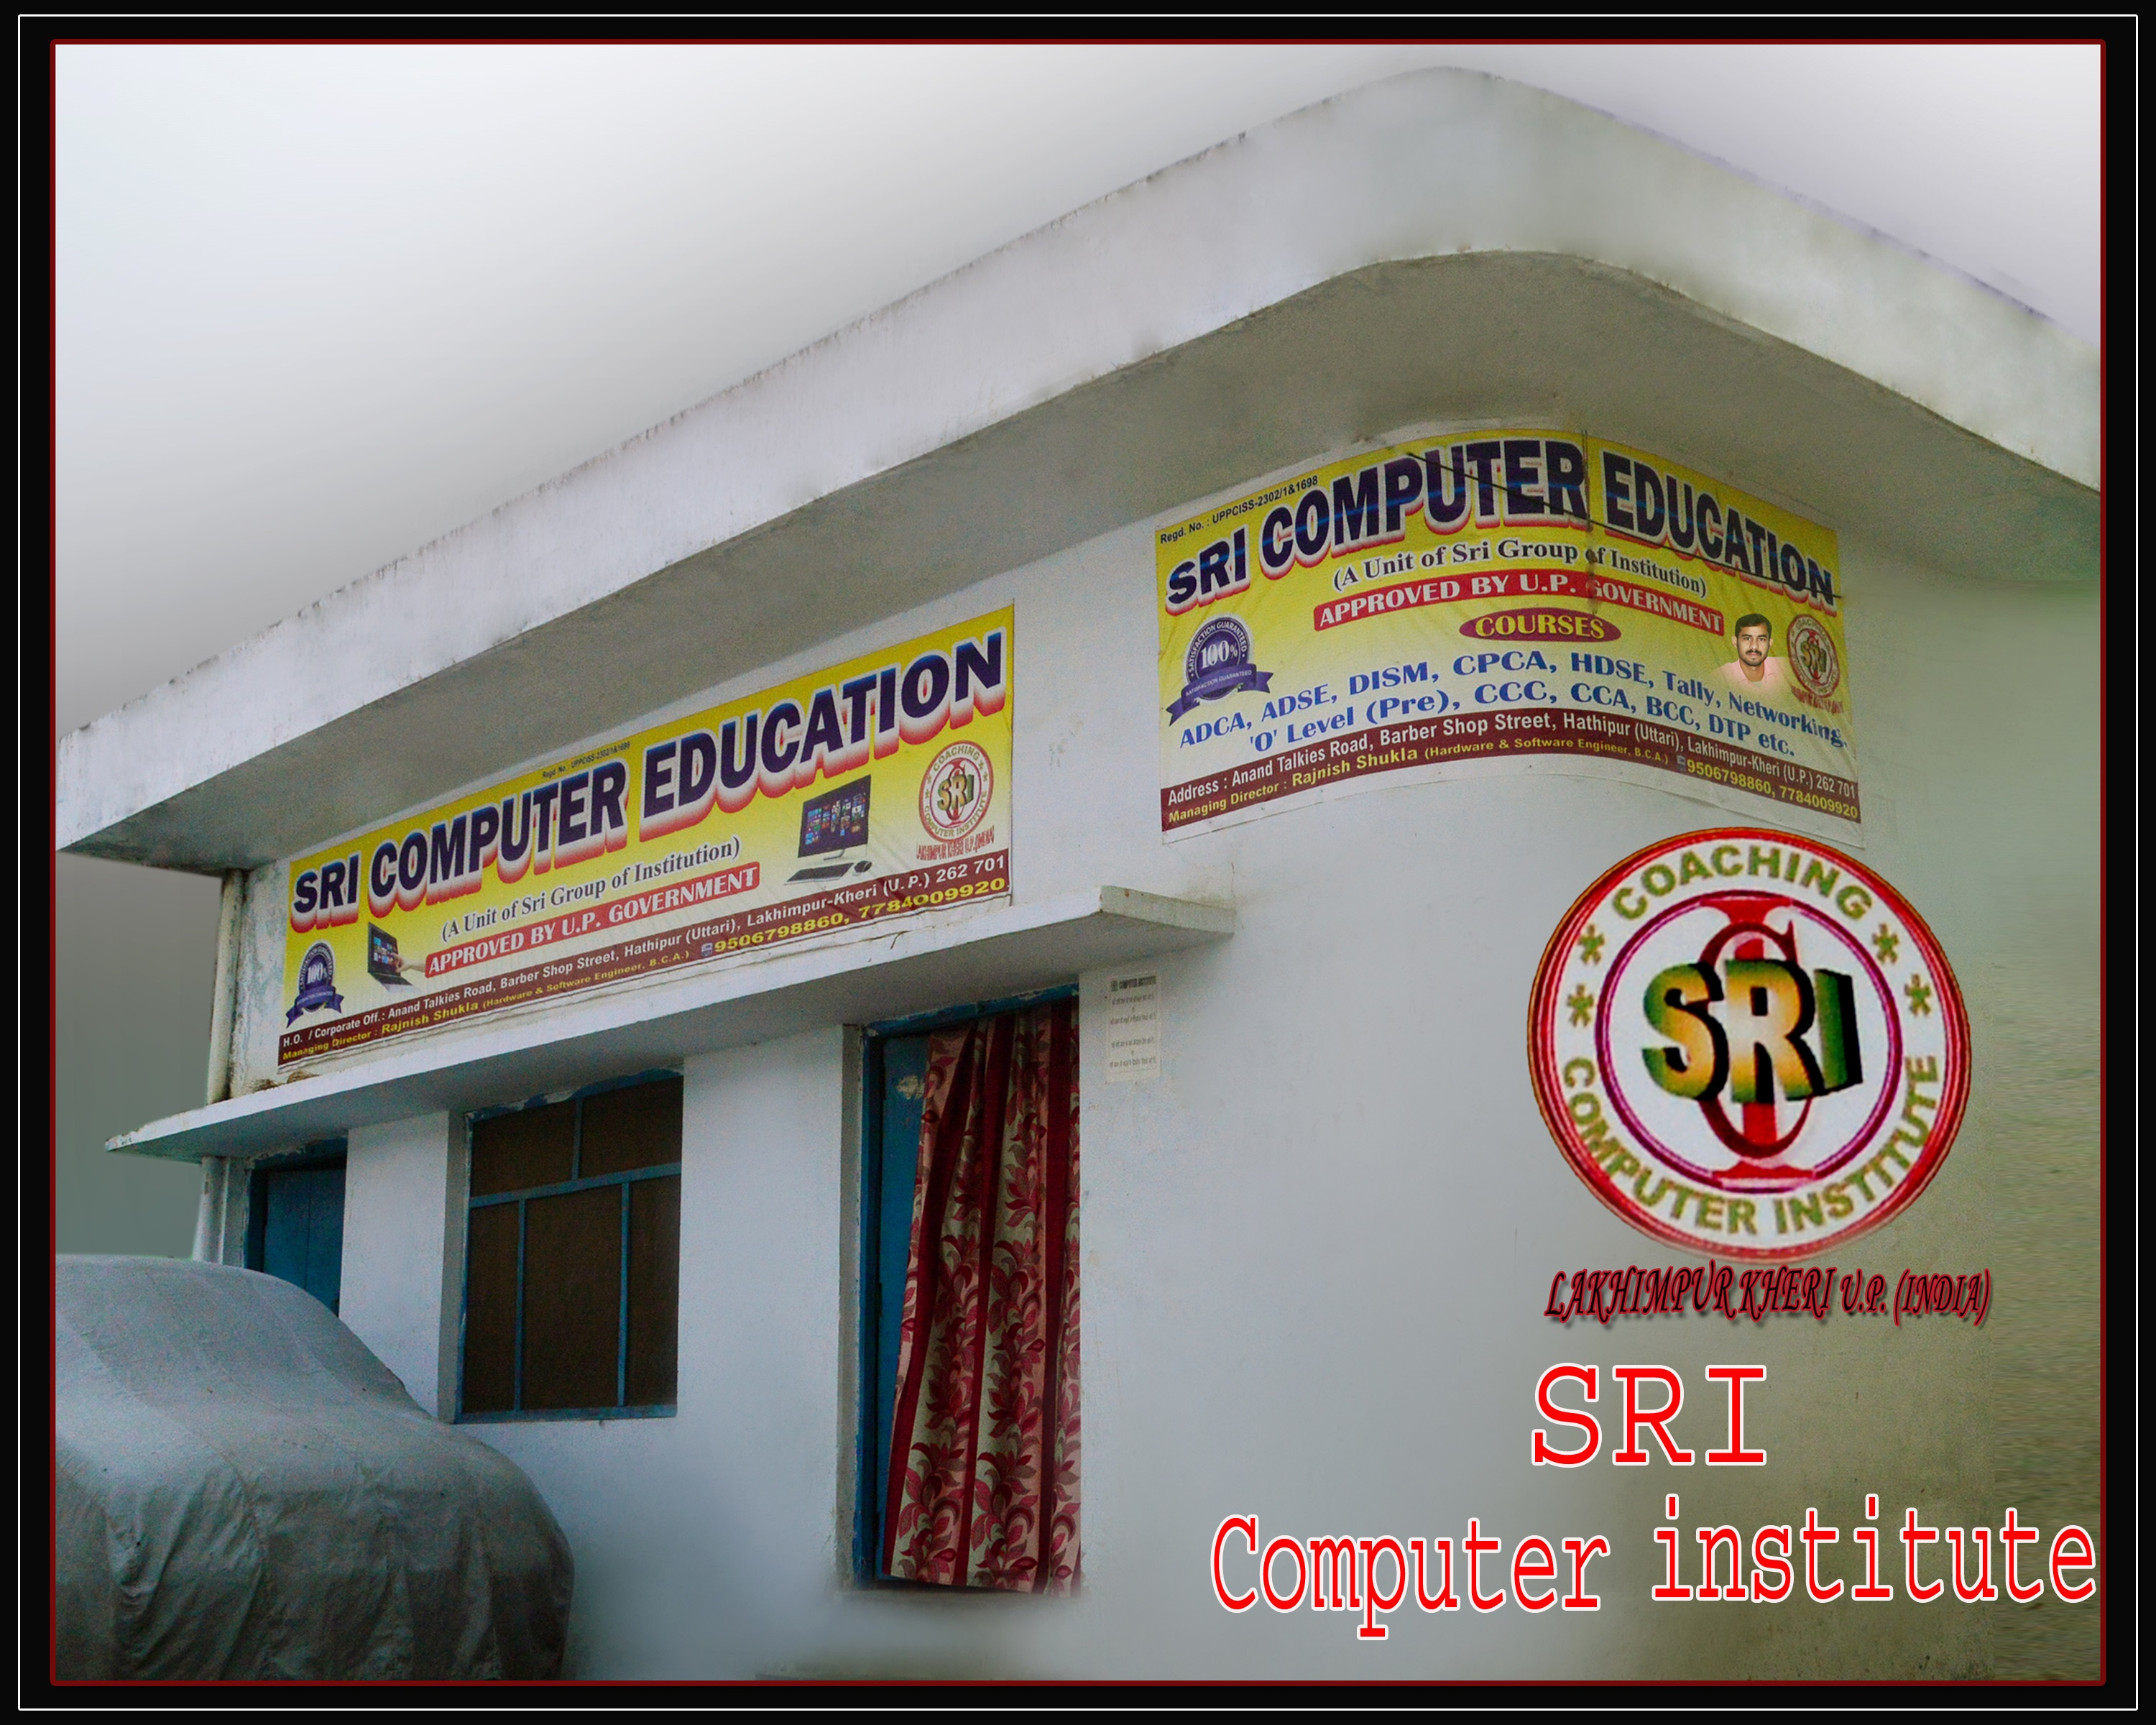 SRI COMPUTER EDUCATION (SES)-SchoSys.com